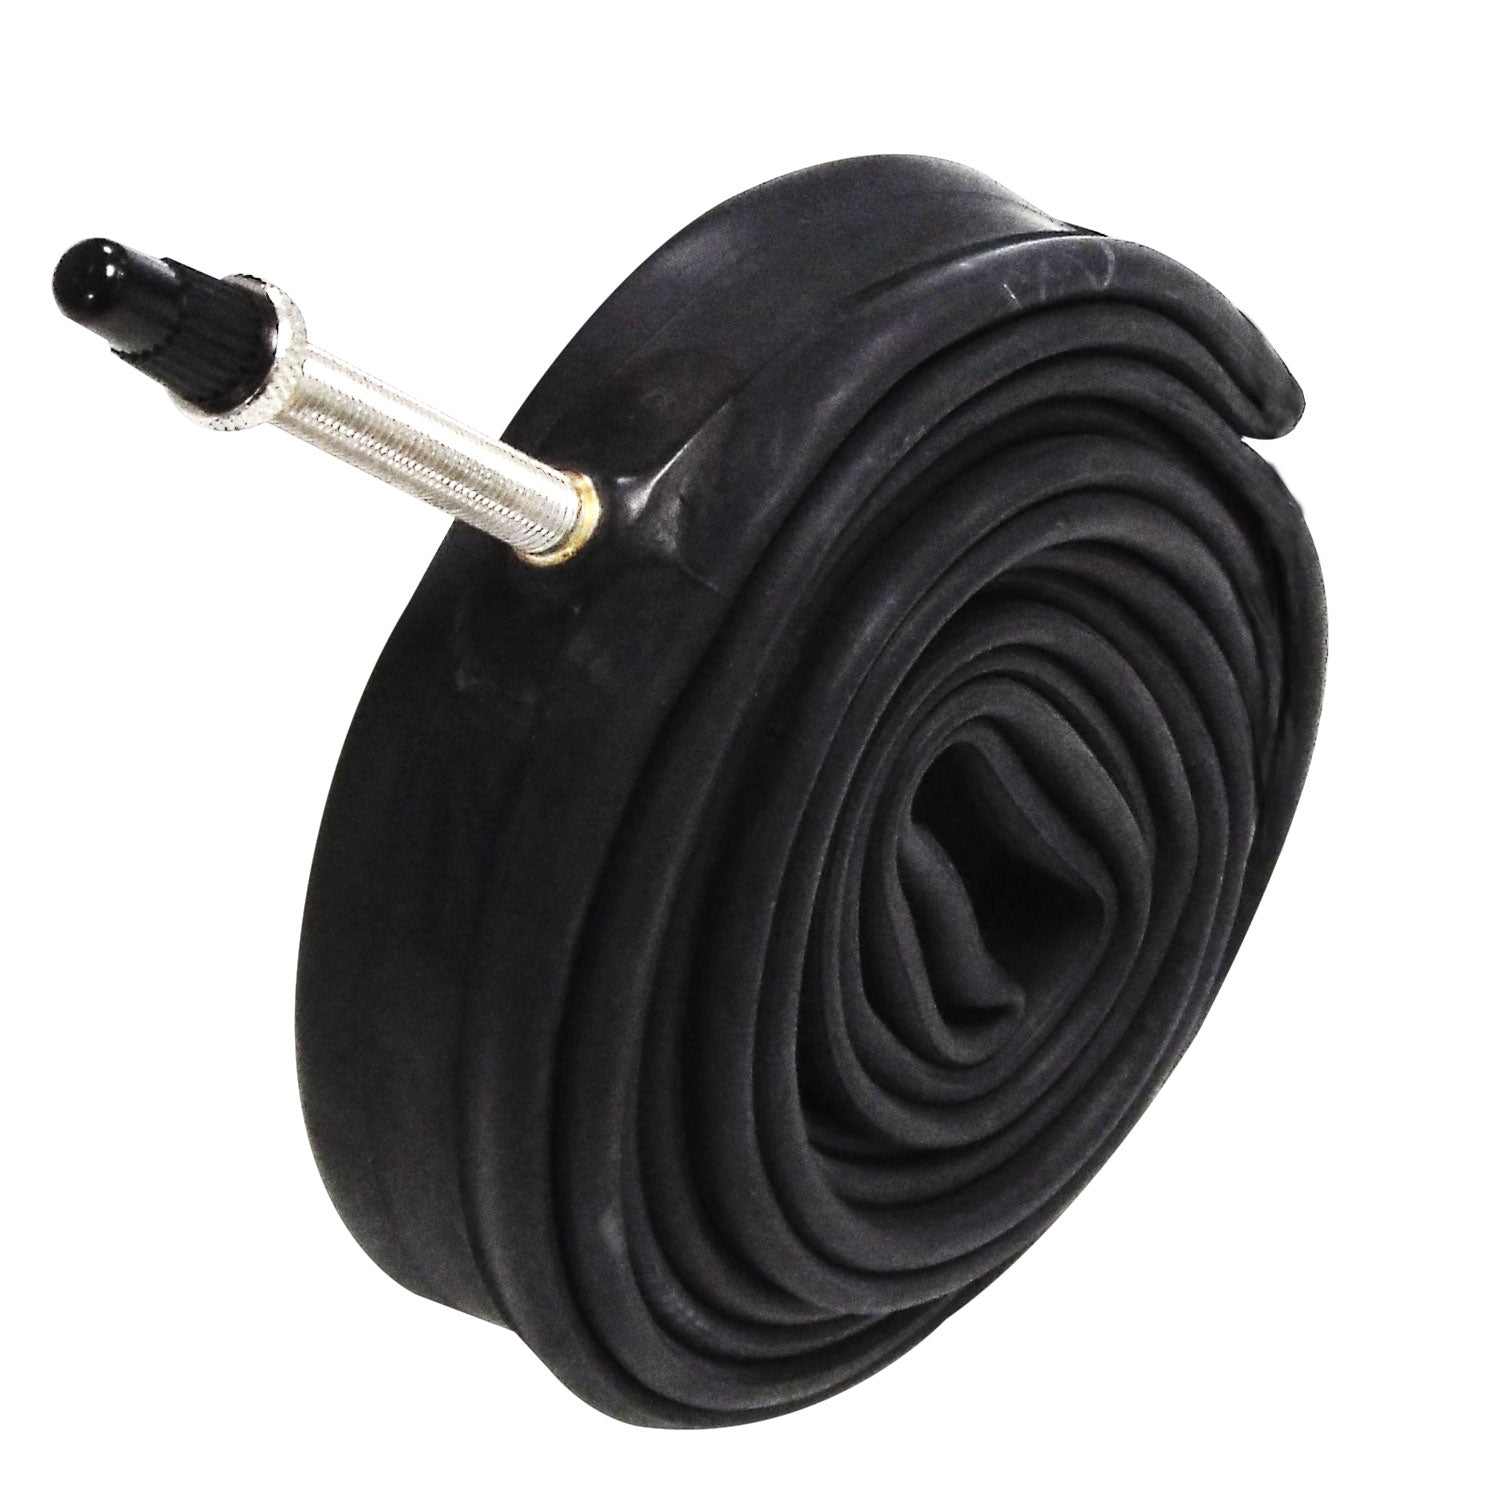 VeloChampion Road Inner Tube 700x25/32 Presta 48mm valve - Velochampion